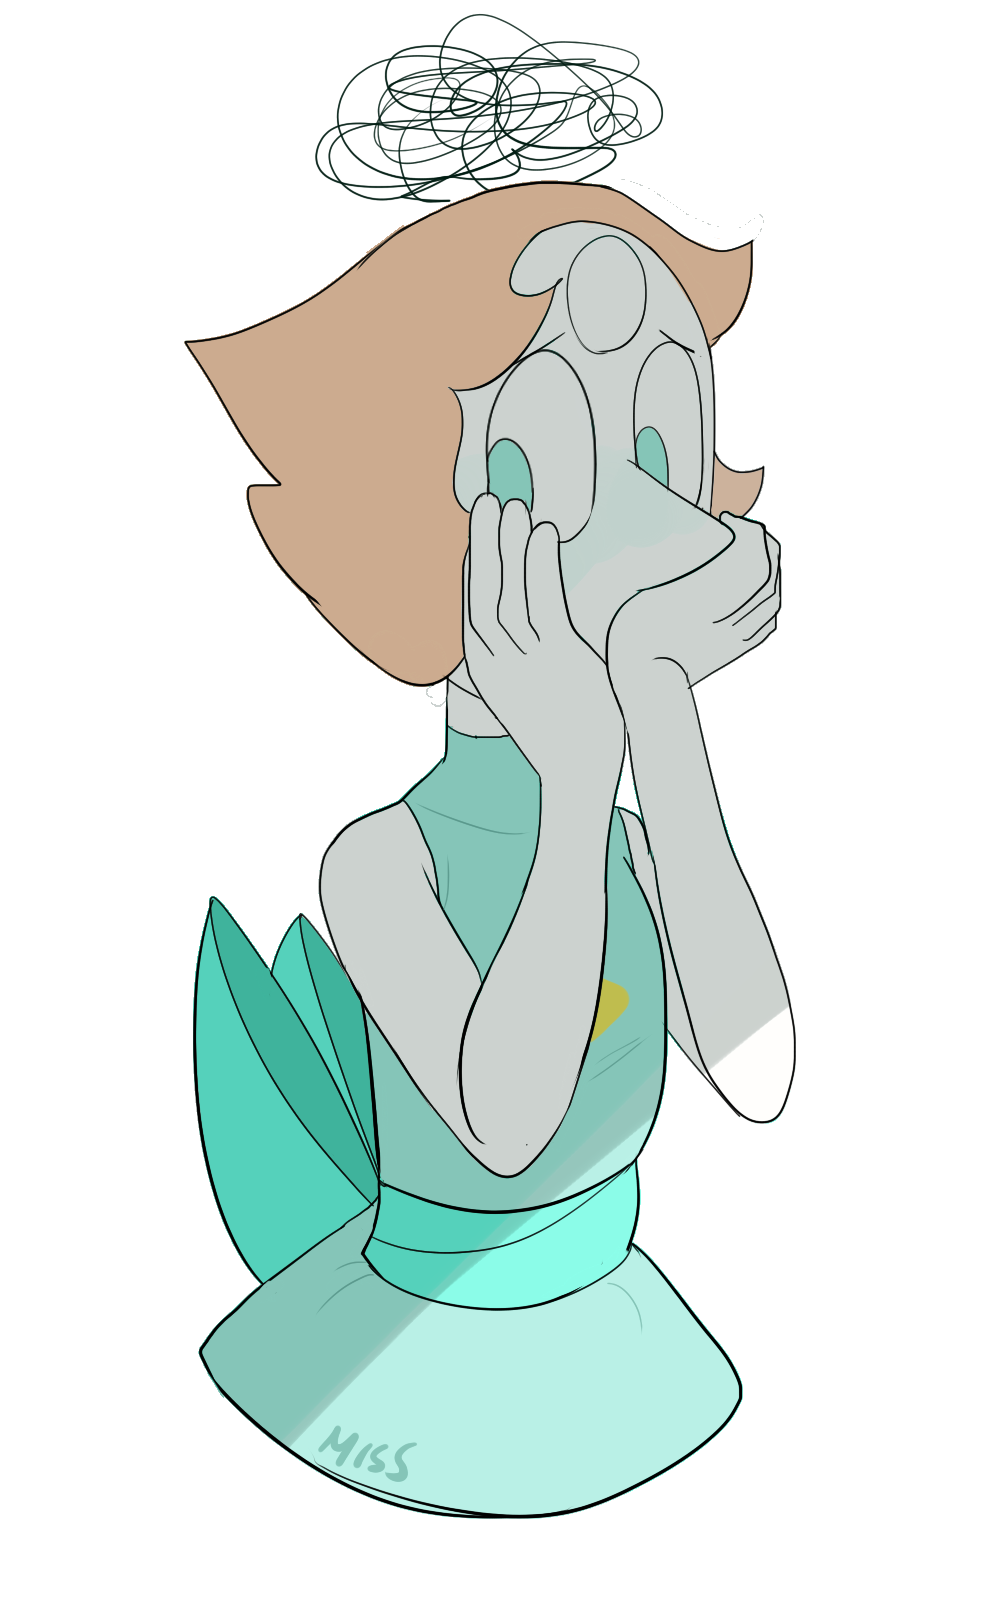 now is time for one of my most classic drawings: sad pearl